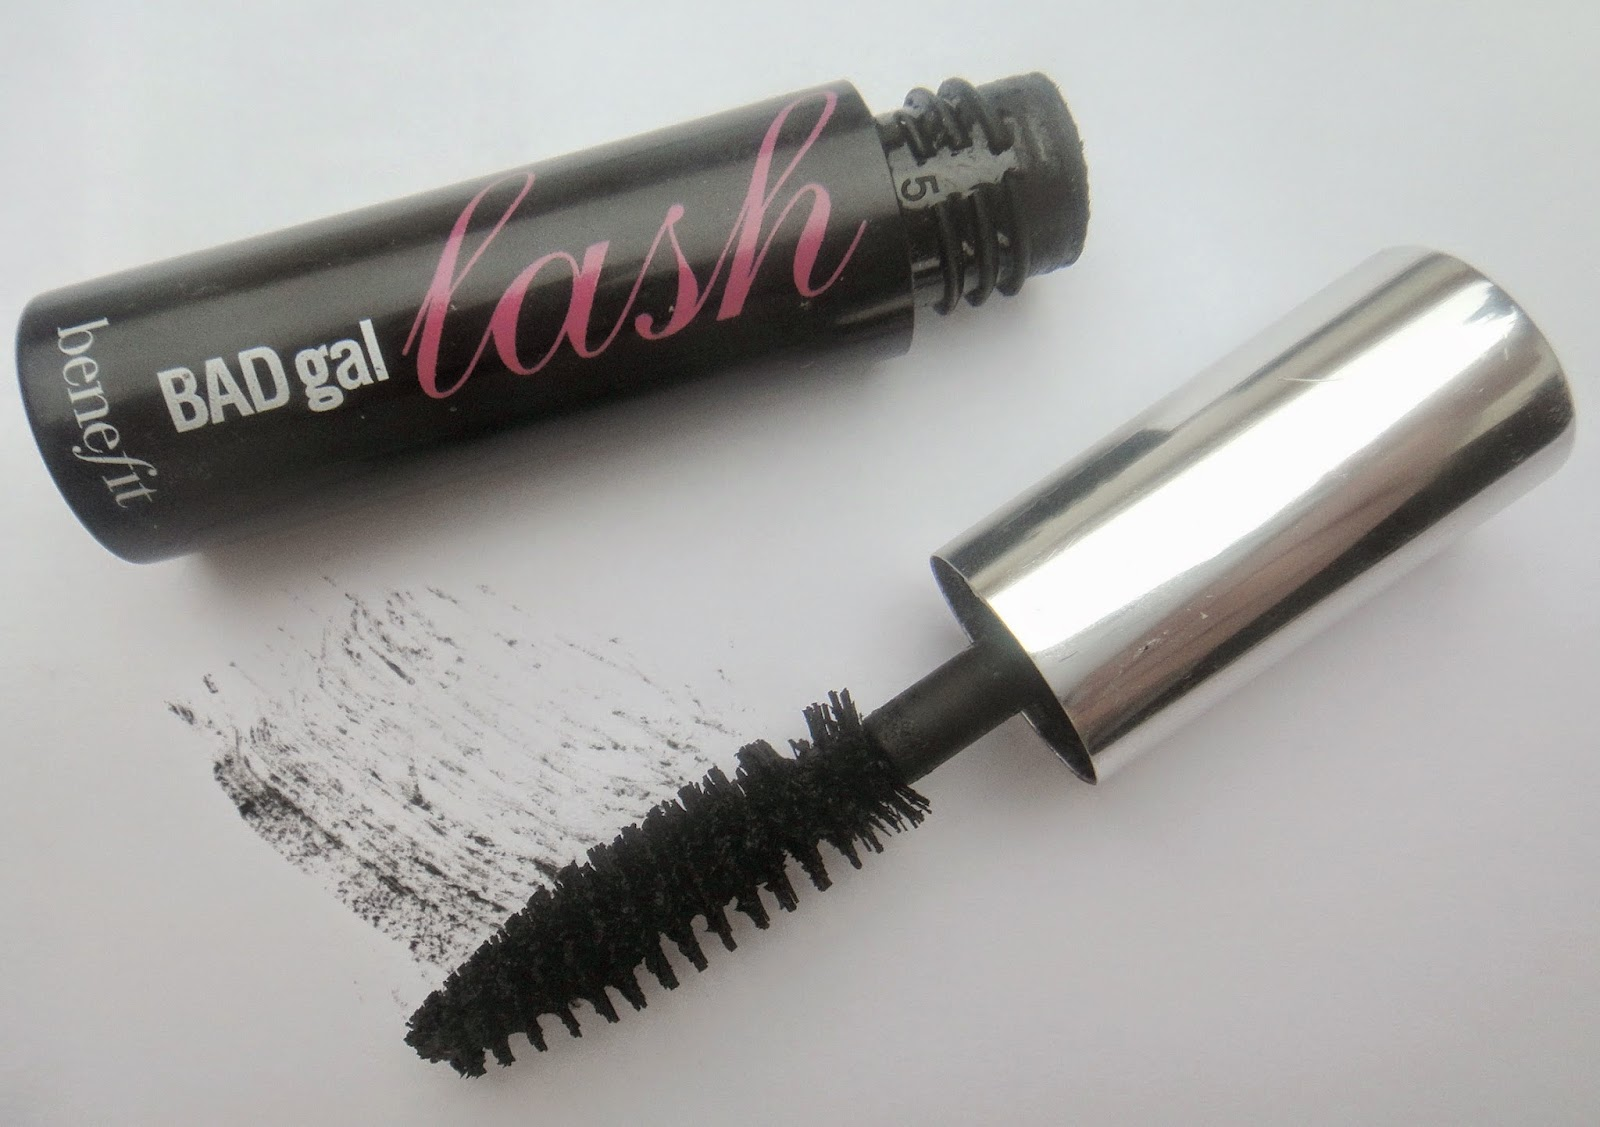 358d9f6e620 BADgal lash mascara is the oldest to be sold out of these three mascaras  and to be honest I wouldn't of really either tried this hadn't it been for my  mum.